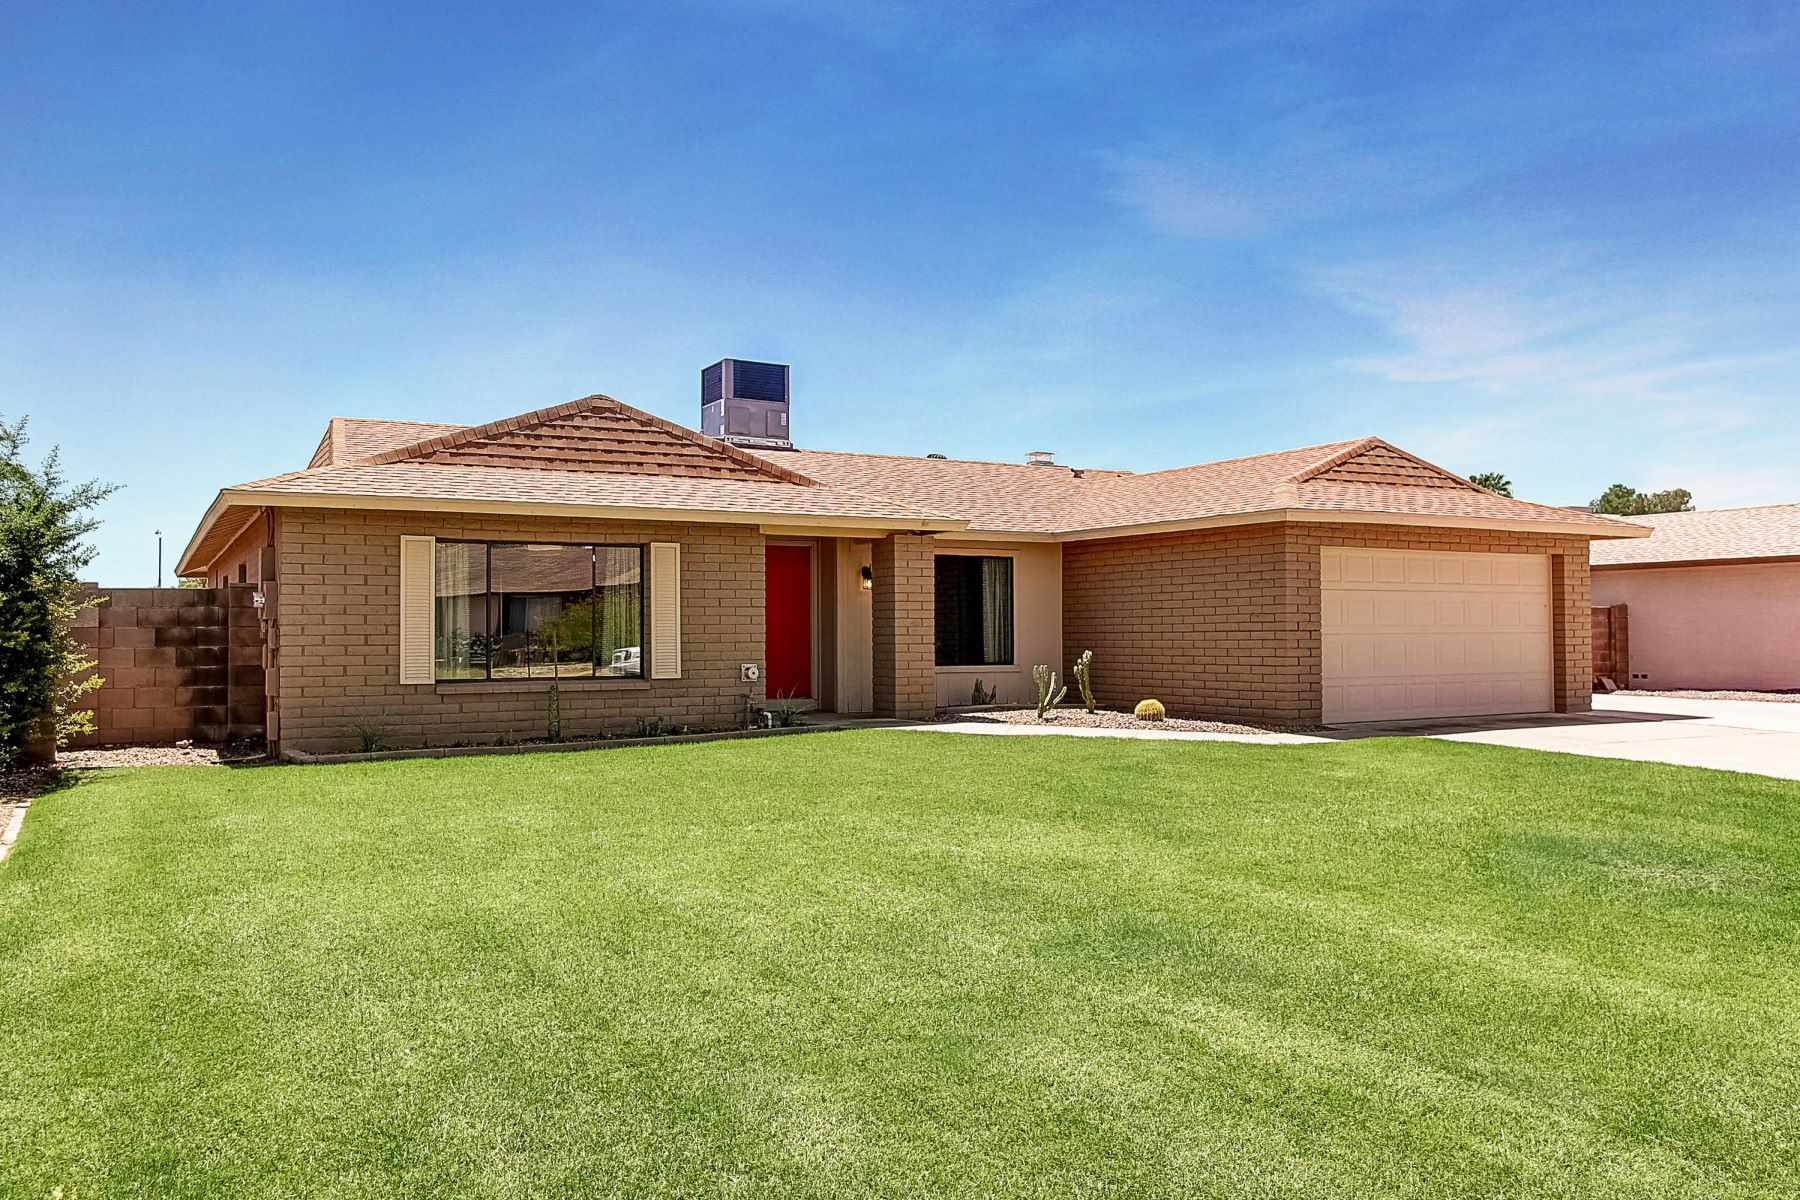 Casa Unifamiliar por un Venta en Move-in ready Scottsdale home 4837 E Acoma Dr Scottsdale, Arizona, 85254 Estados Unidos